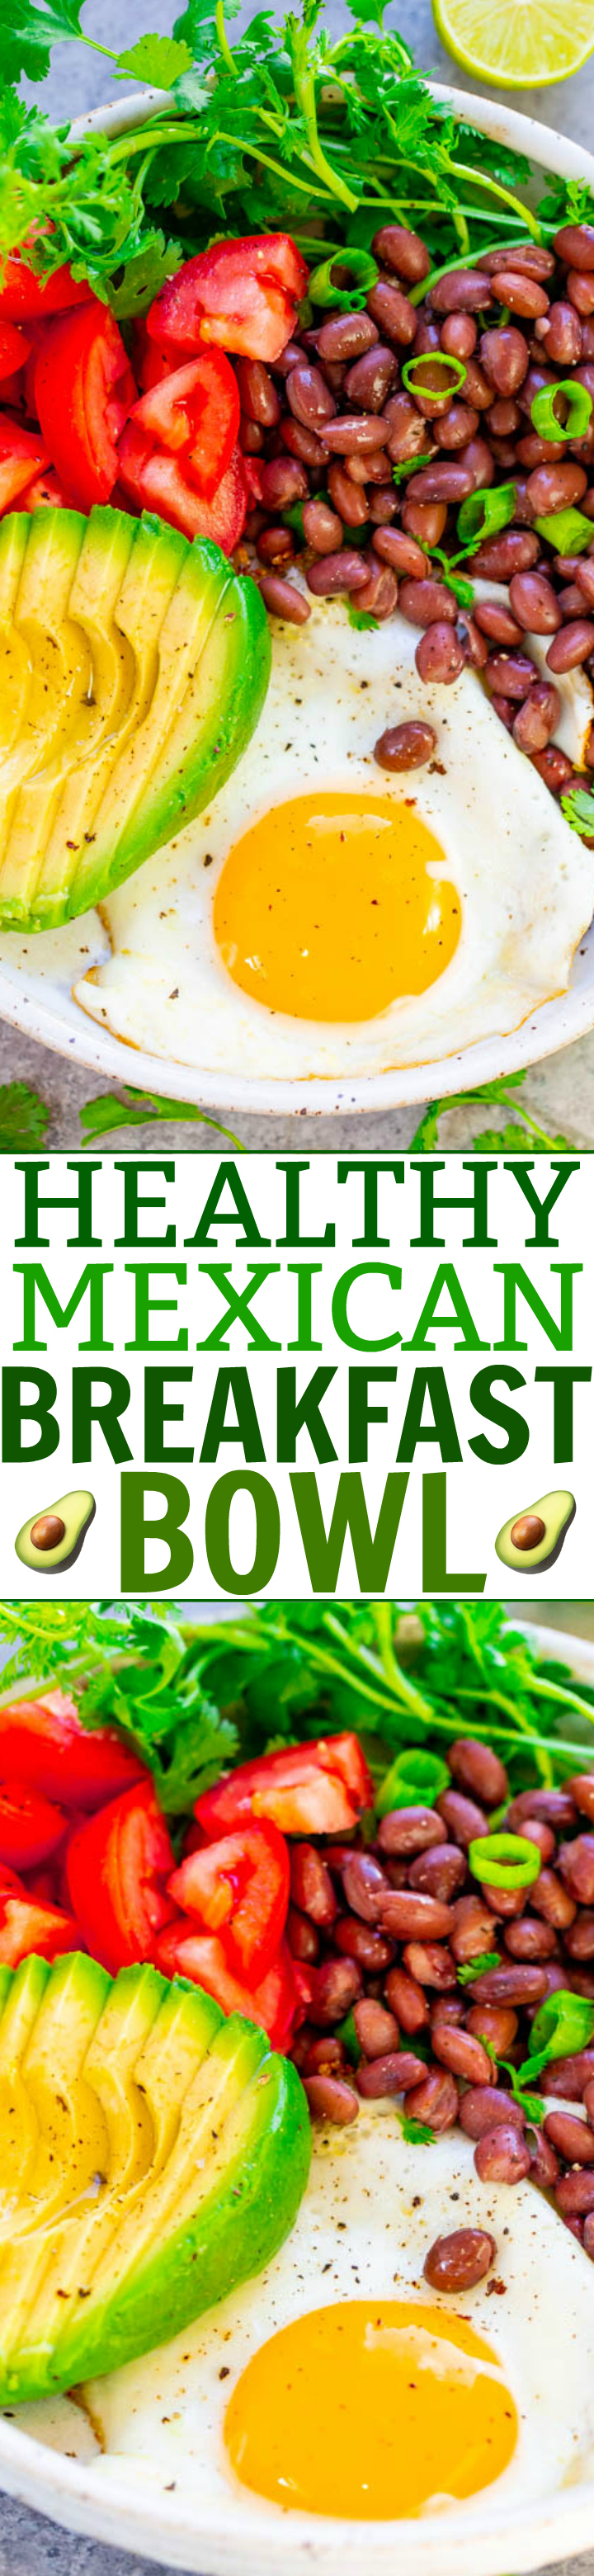 Mexican Breakfast Bowl - Say hello to this high protein, low-carb meal that's EASY, ready in 5 minutes, naturally vegetarian and gluten-free, and so TASTY!! Great for light lunches and meatless dinners!!